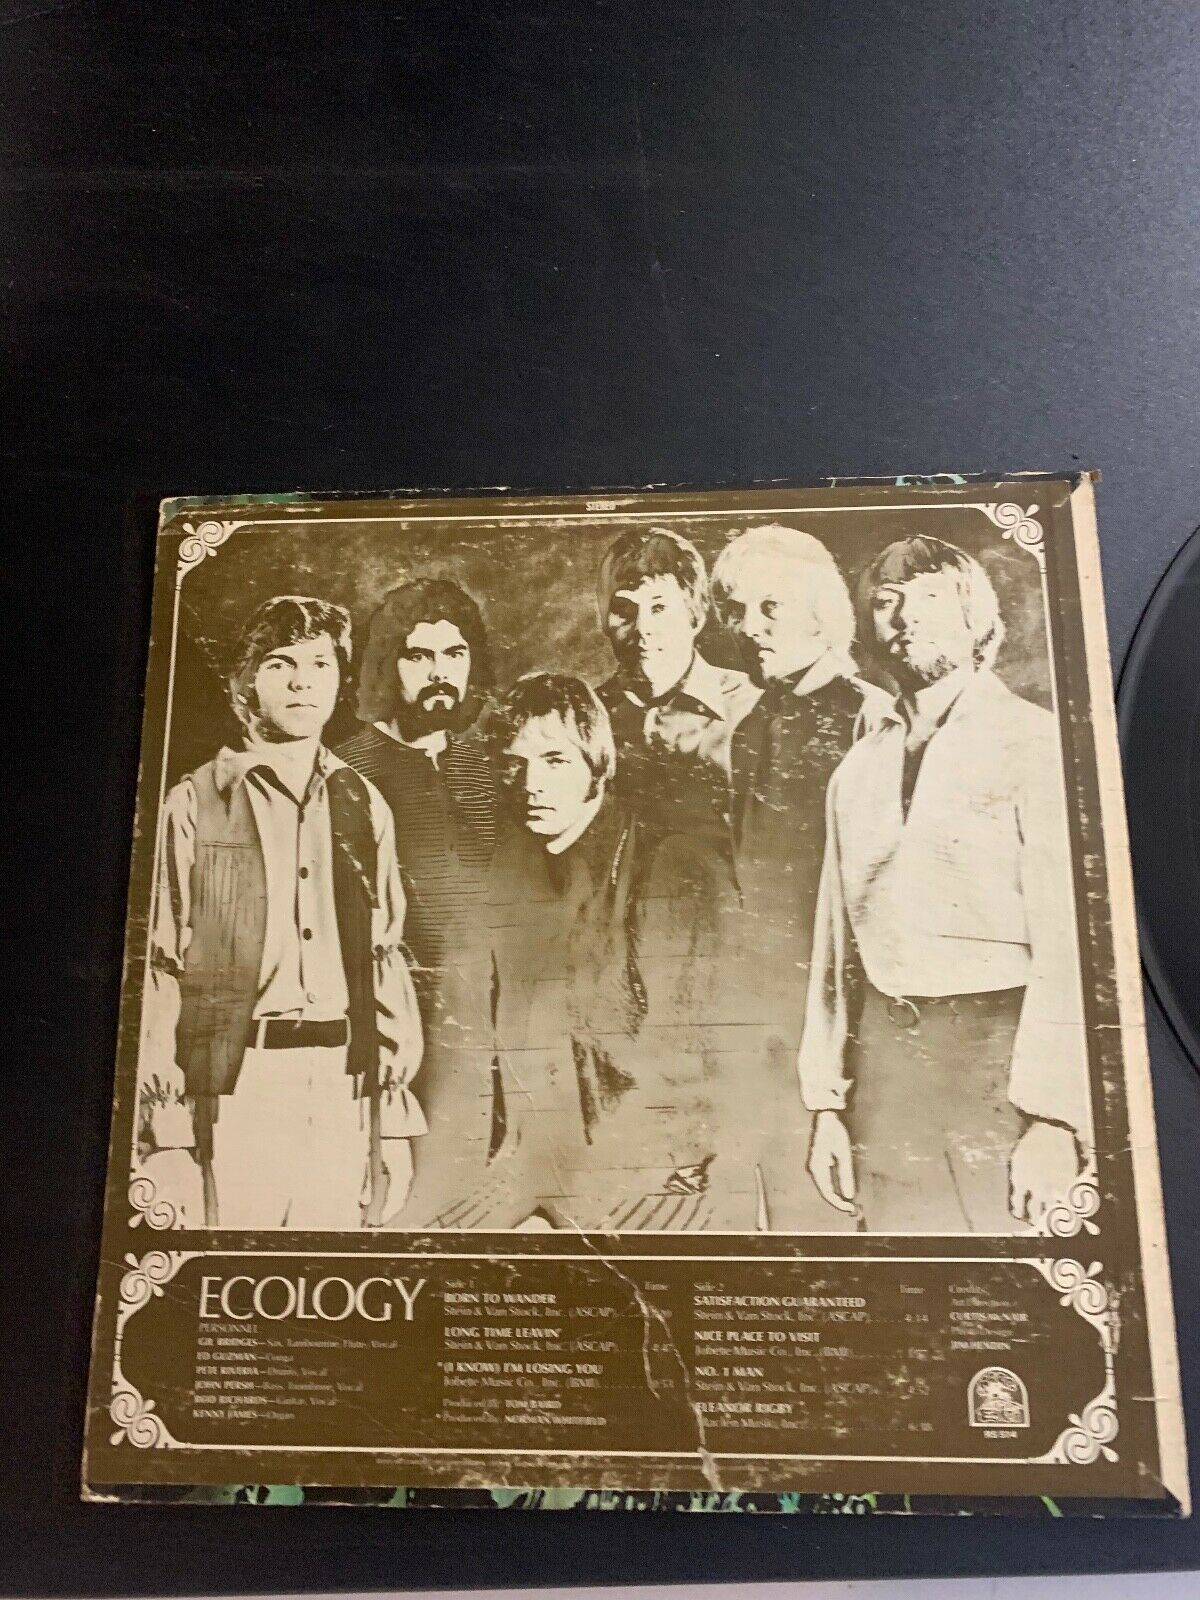 LP RECORD - RARE EARTH - ECOLOGY - RARE EARTH RECORDS - $9.99